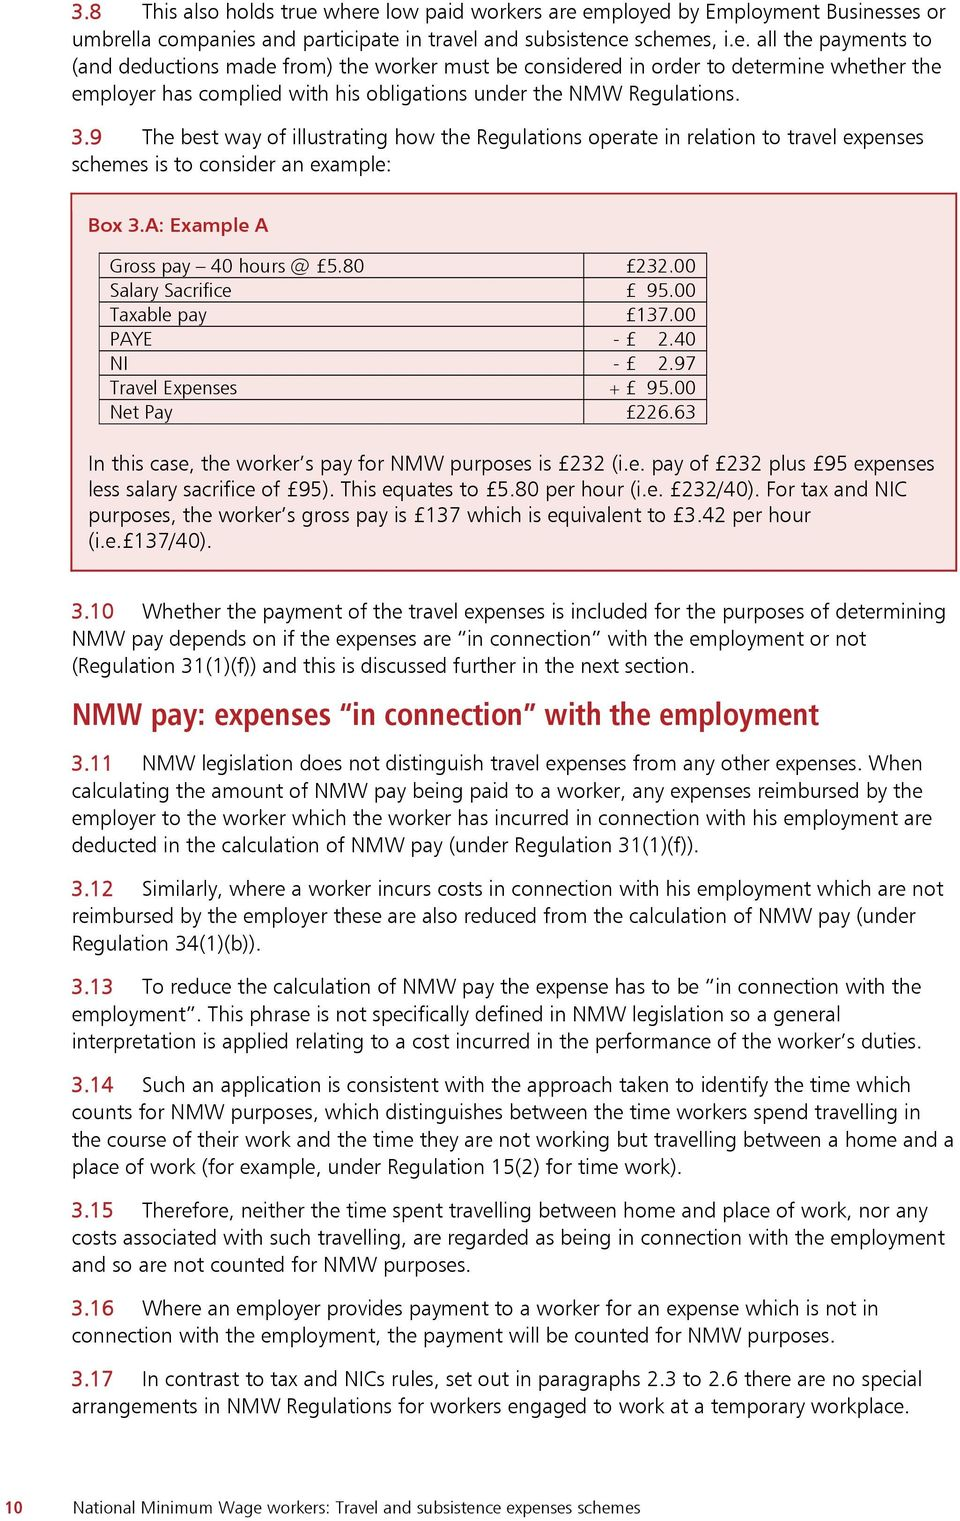 national minimum wage workers travel and subsistence expenses